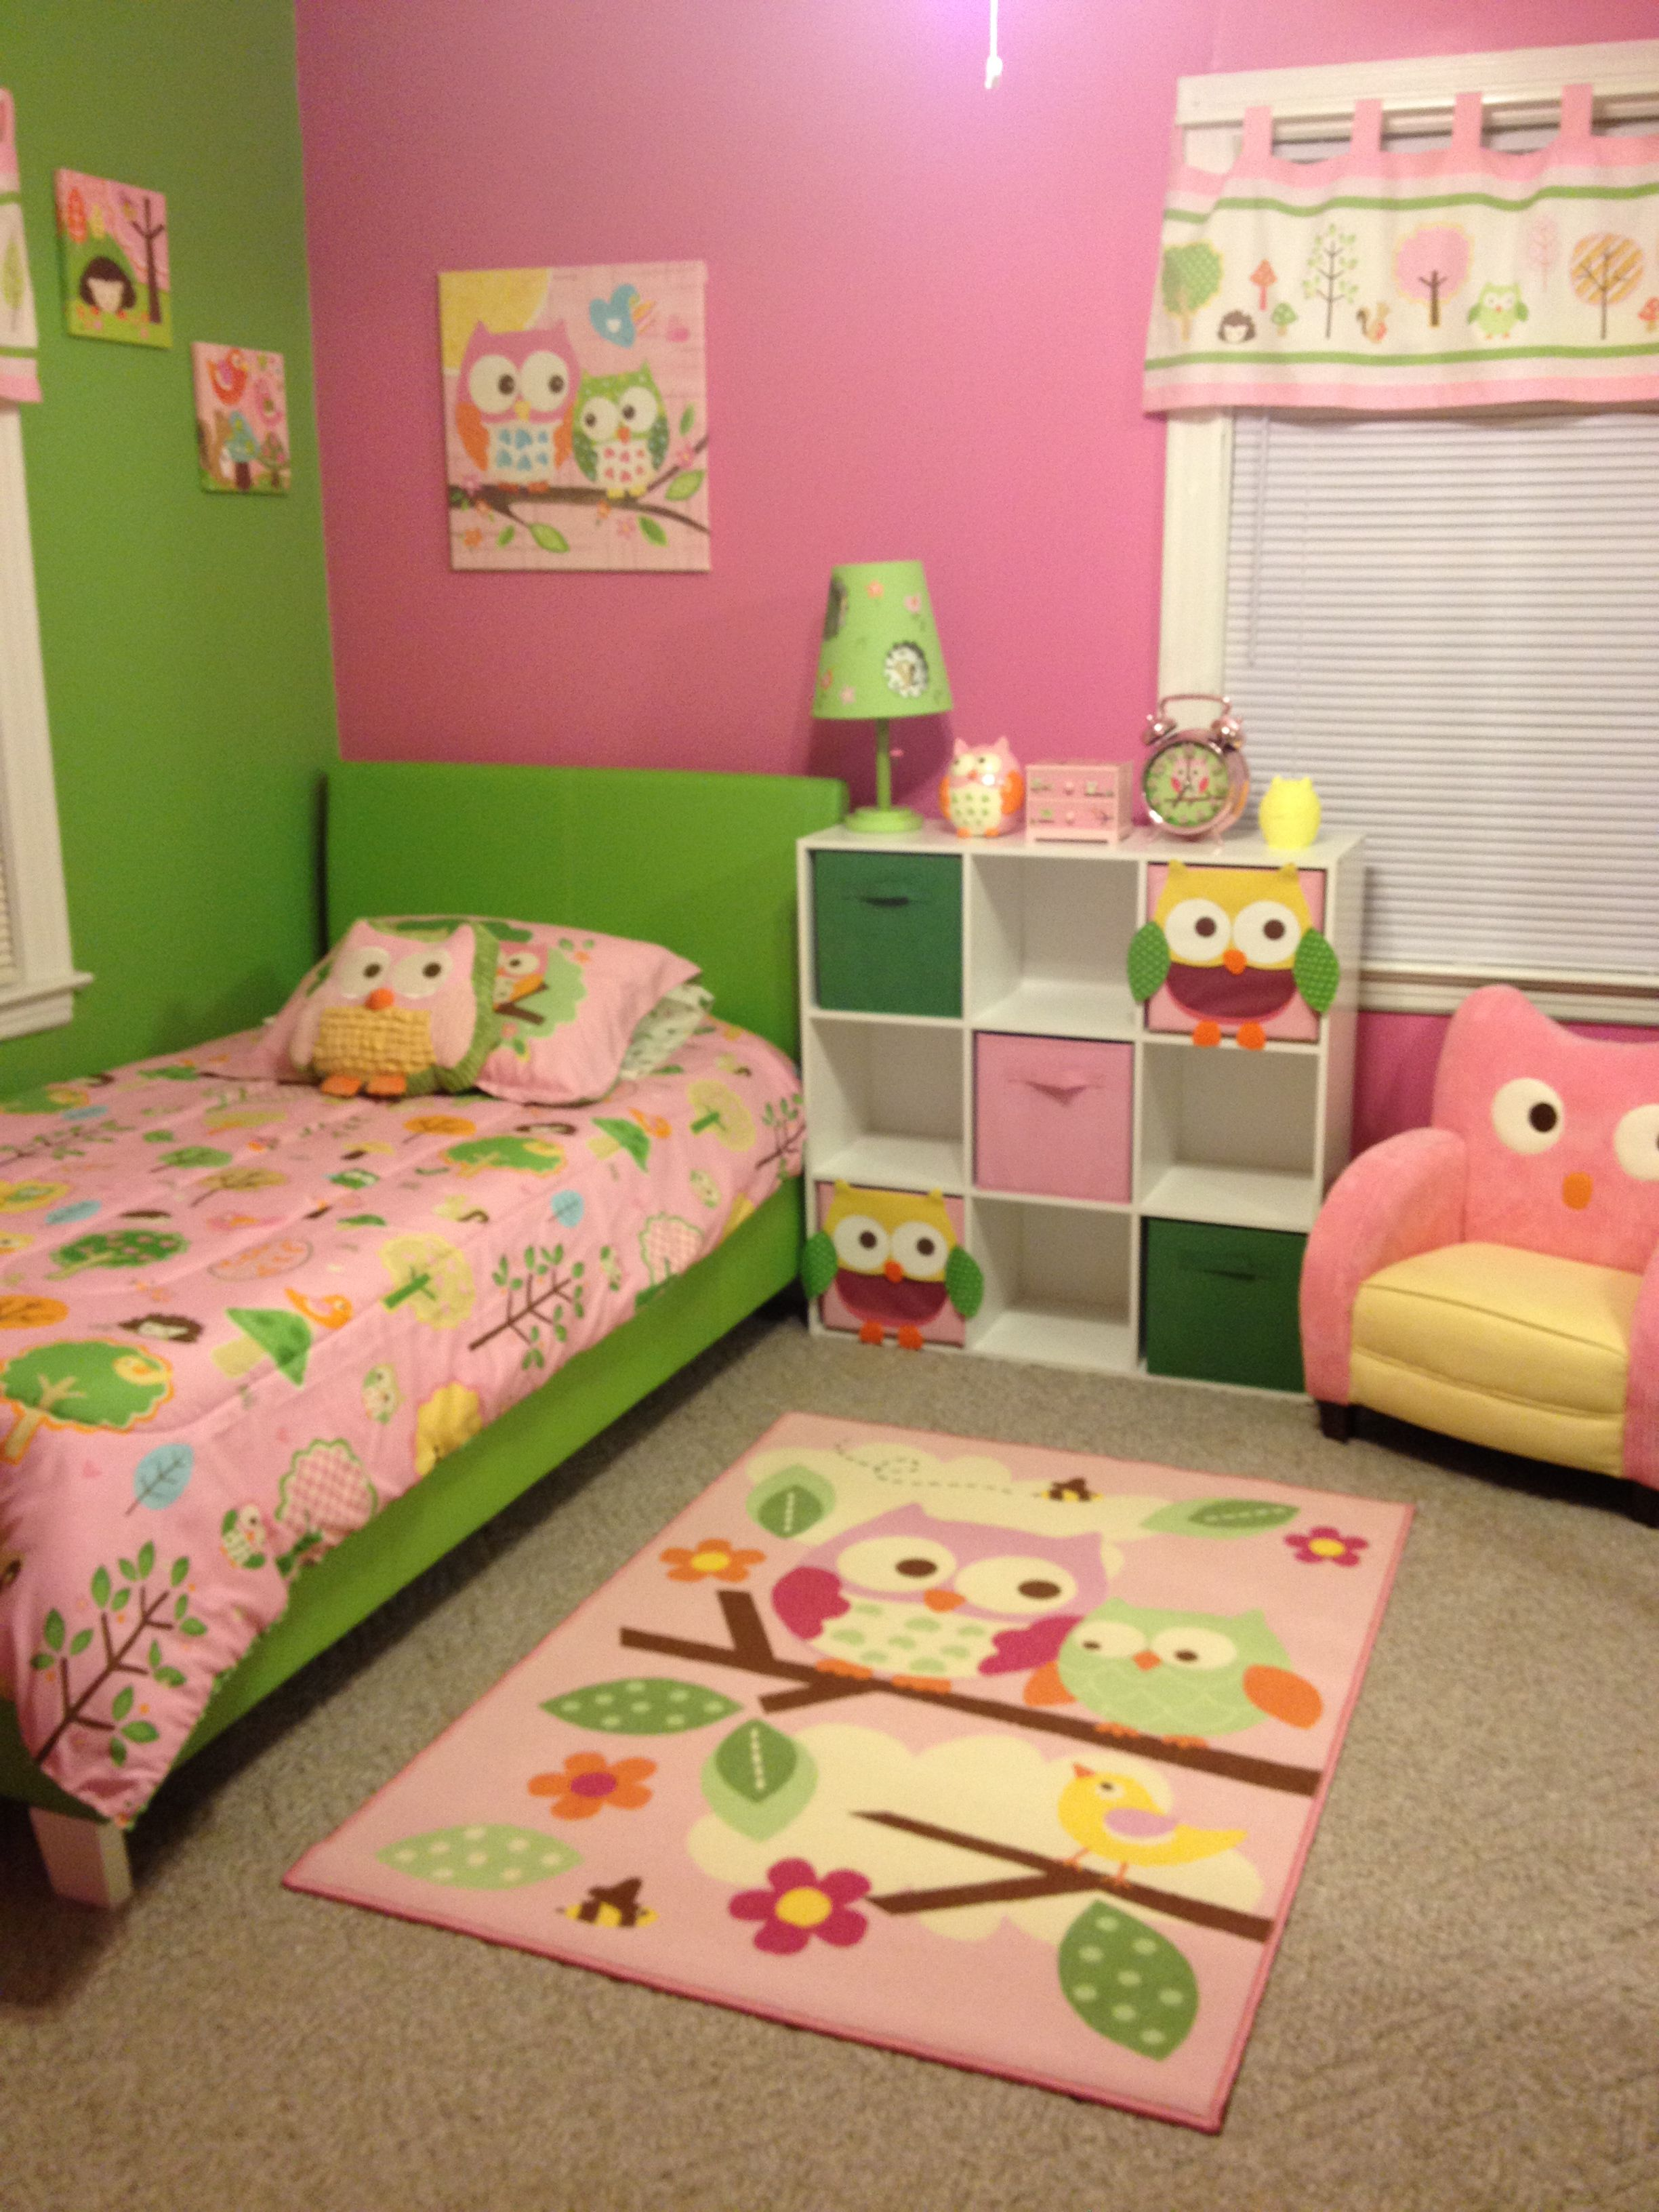 Owl Bedroom Curtains Green And Pink Owl Room Love This Theme And Color For Nevaehs